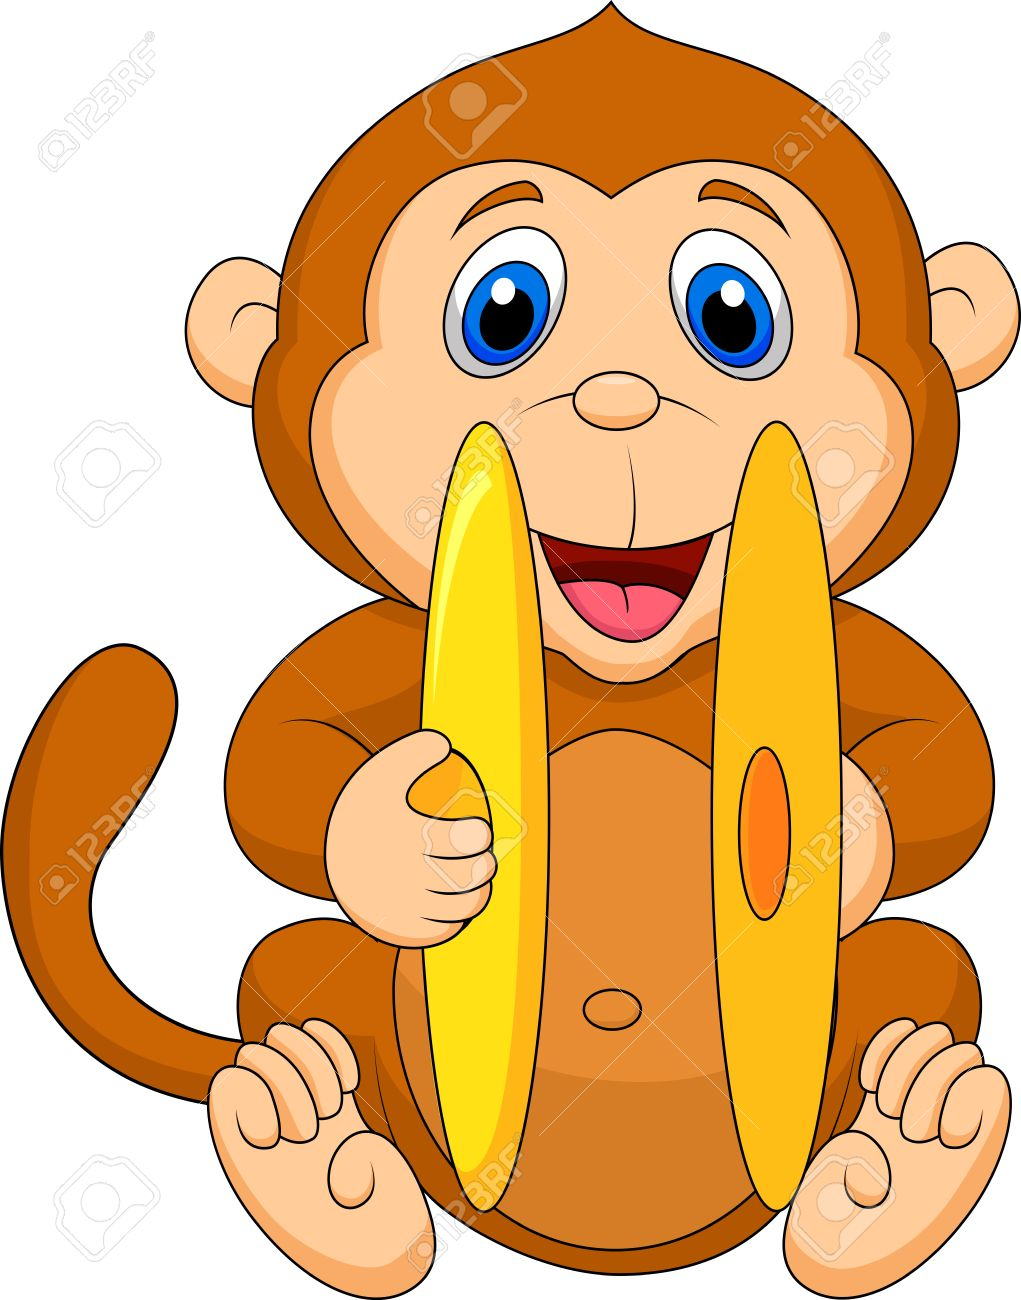 Cute Monkey Cartoon Playing Cymbal Royalty Free Cliparts, Vectors.